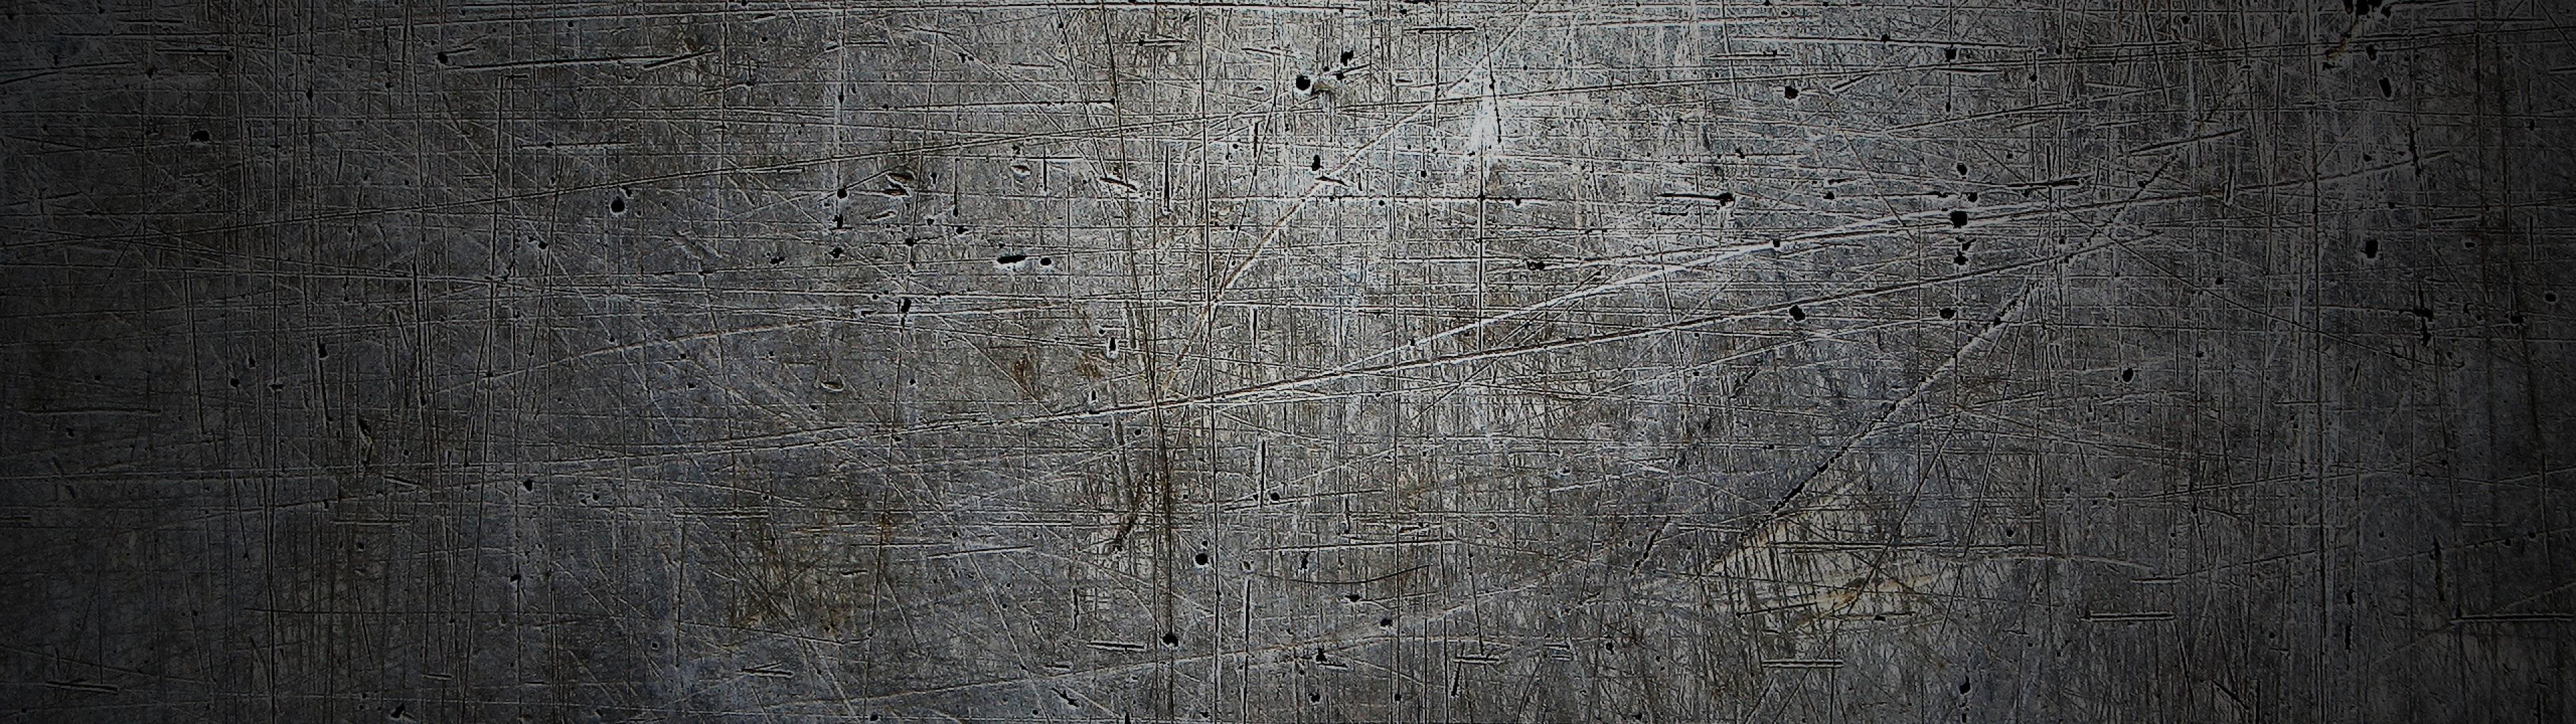 scratched metal texture hd - photo #16